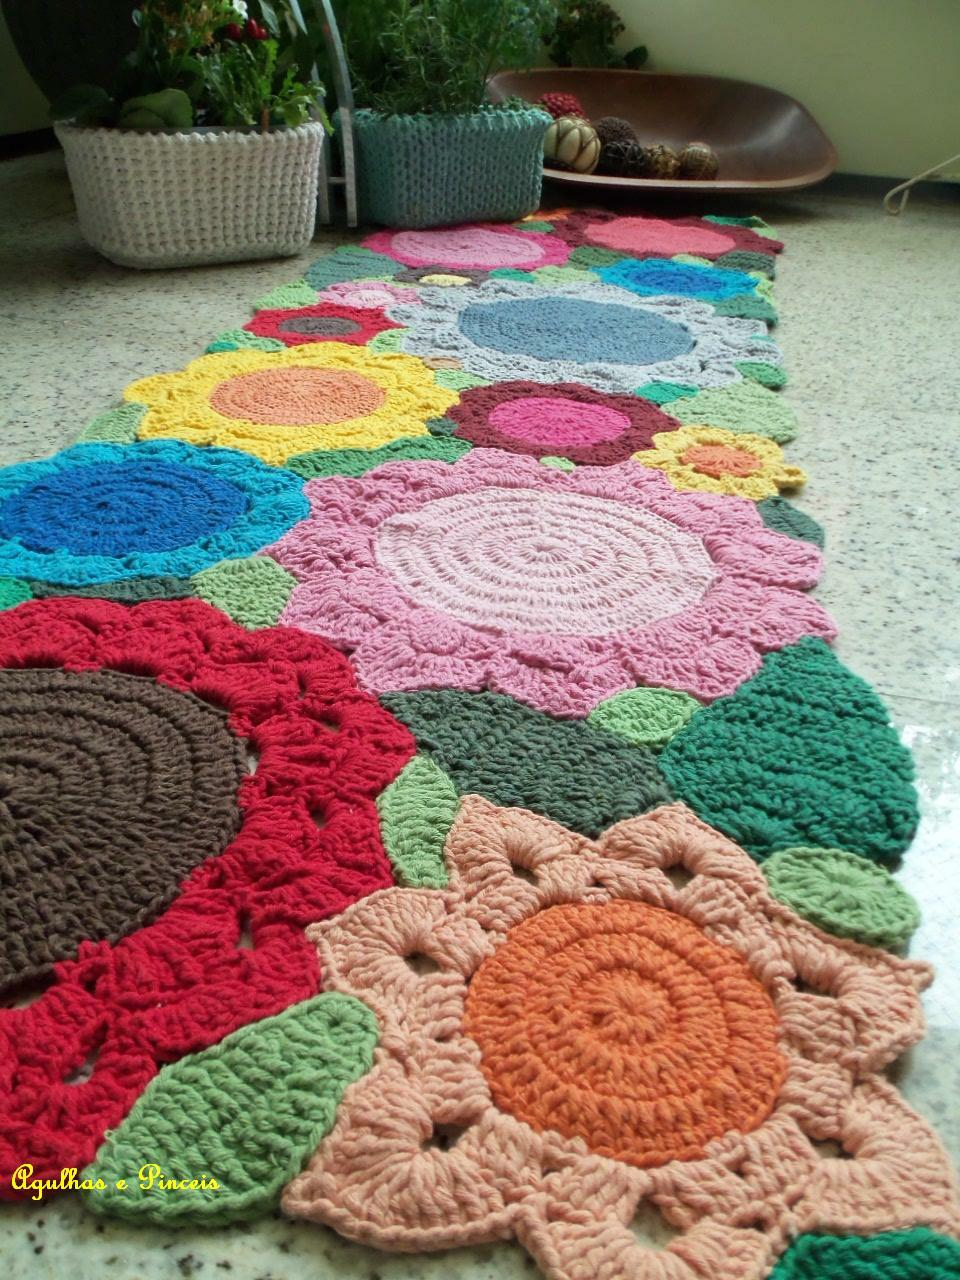 em rita desastre crochet alfombras para so ar. Black Bedroom Furniture Sets. Home Design Ideas